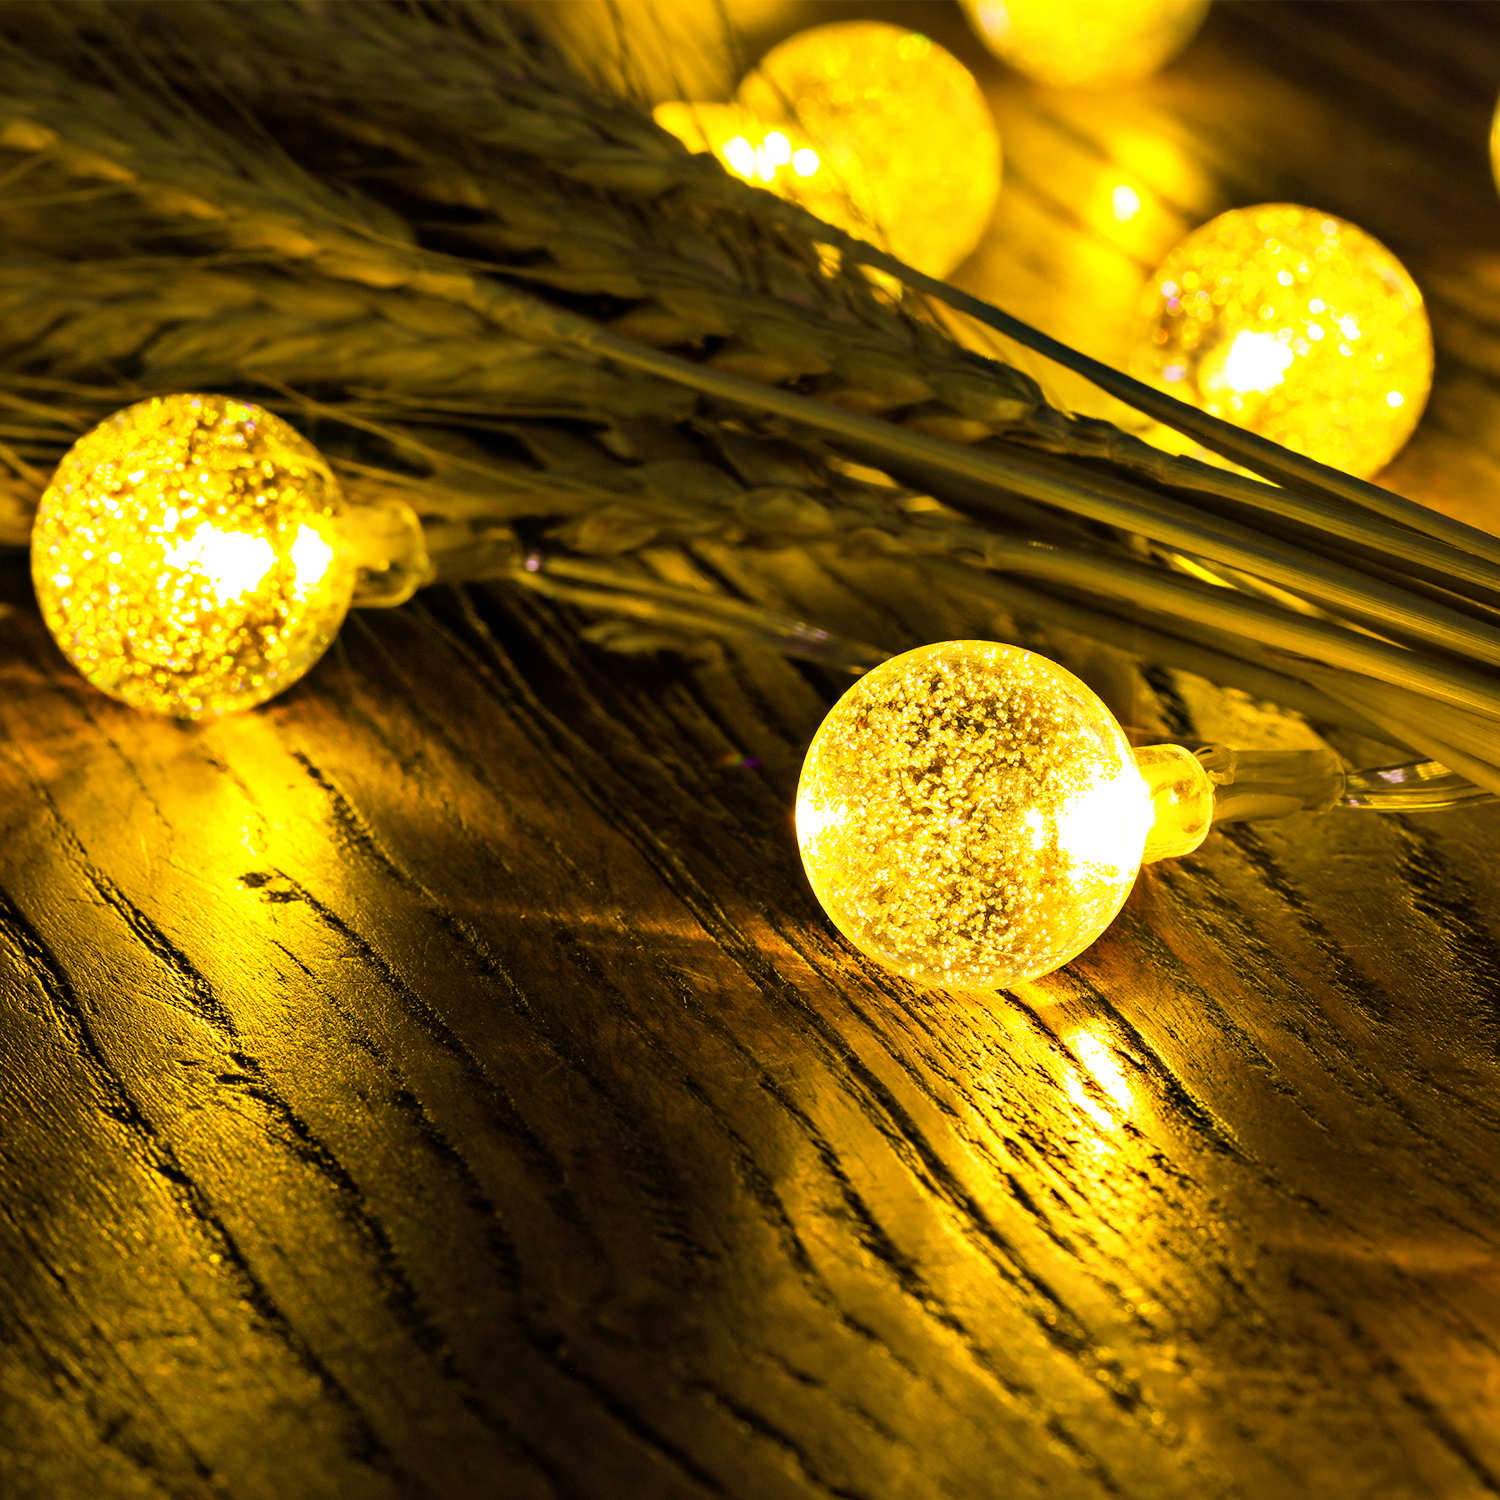 25ft 50 led solar outdoor string lights waterproof ball lights party xmas fun. Black Bedroom Furniture Sets. Home Design Ideas